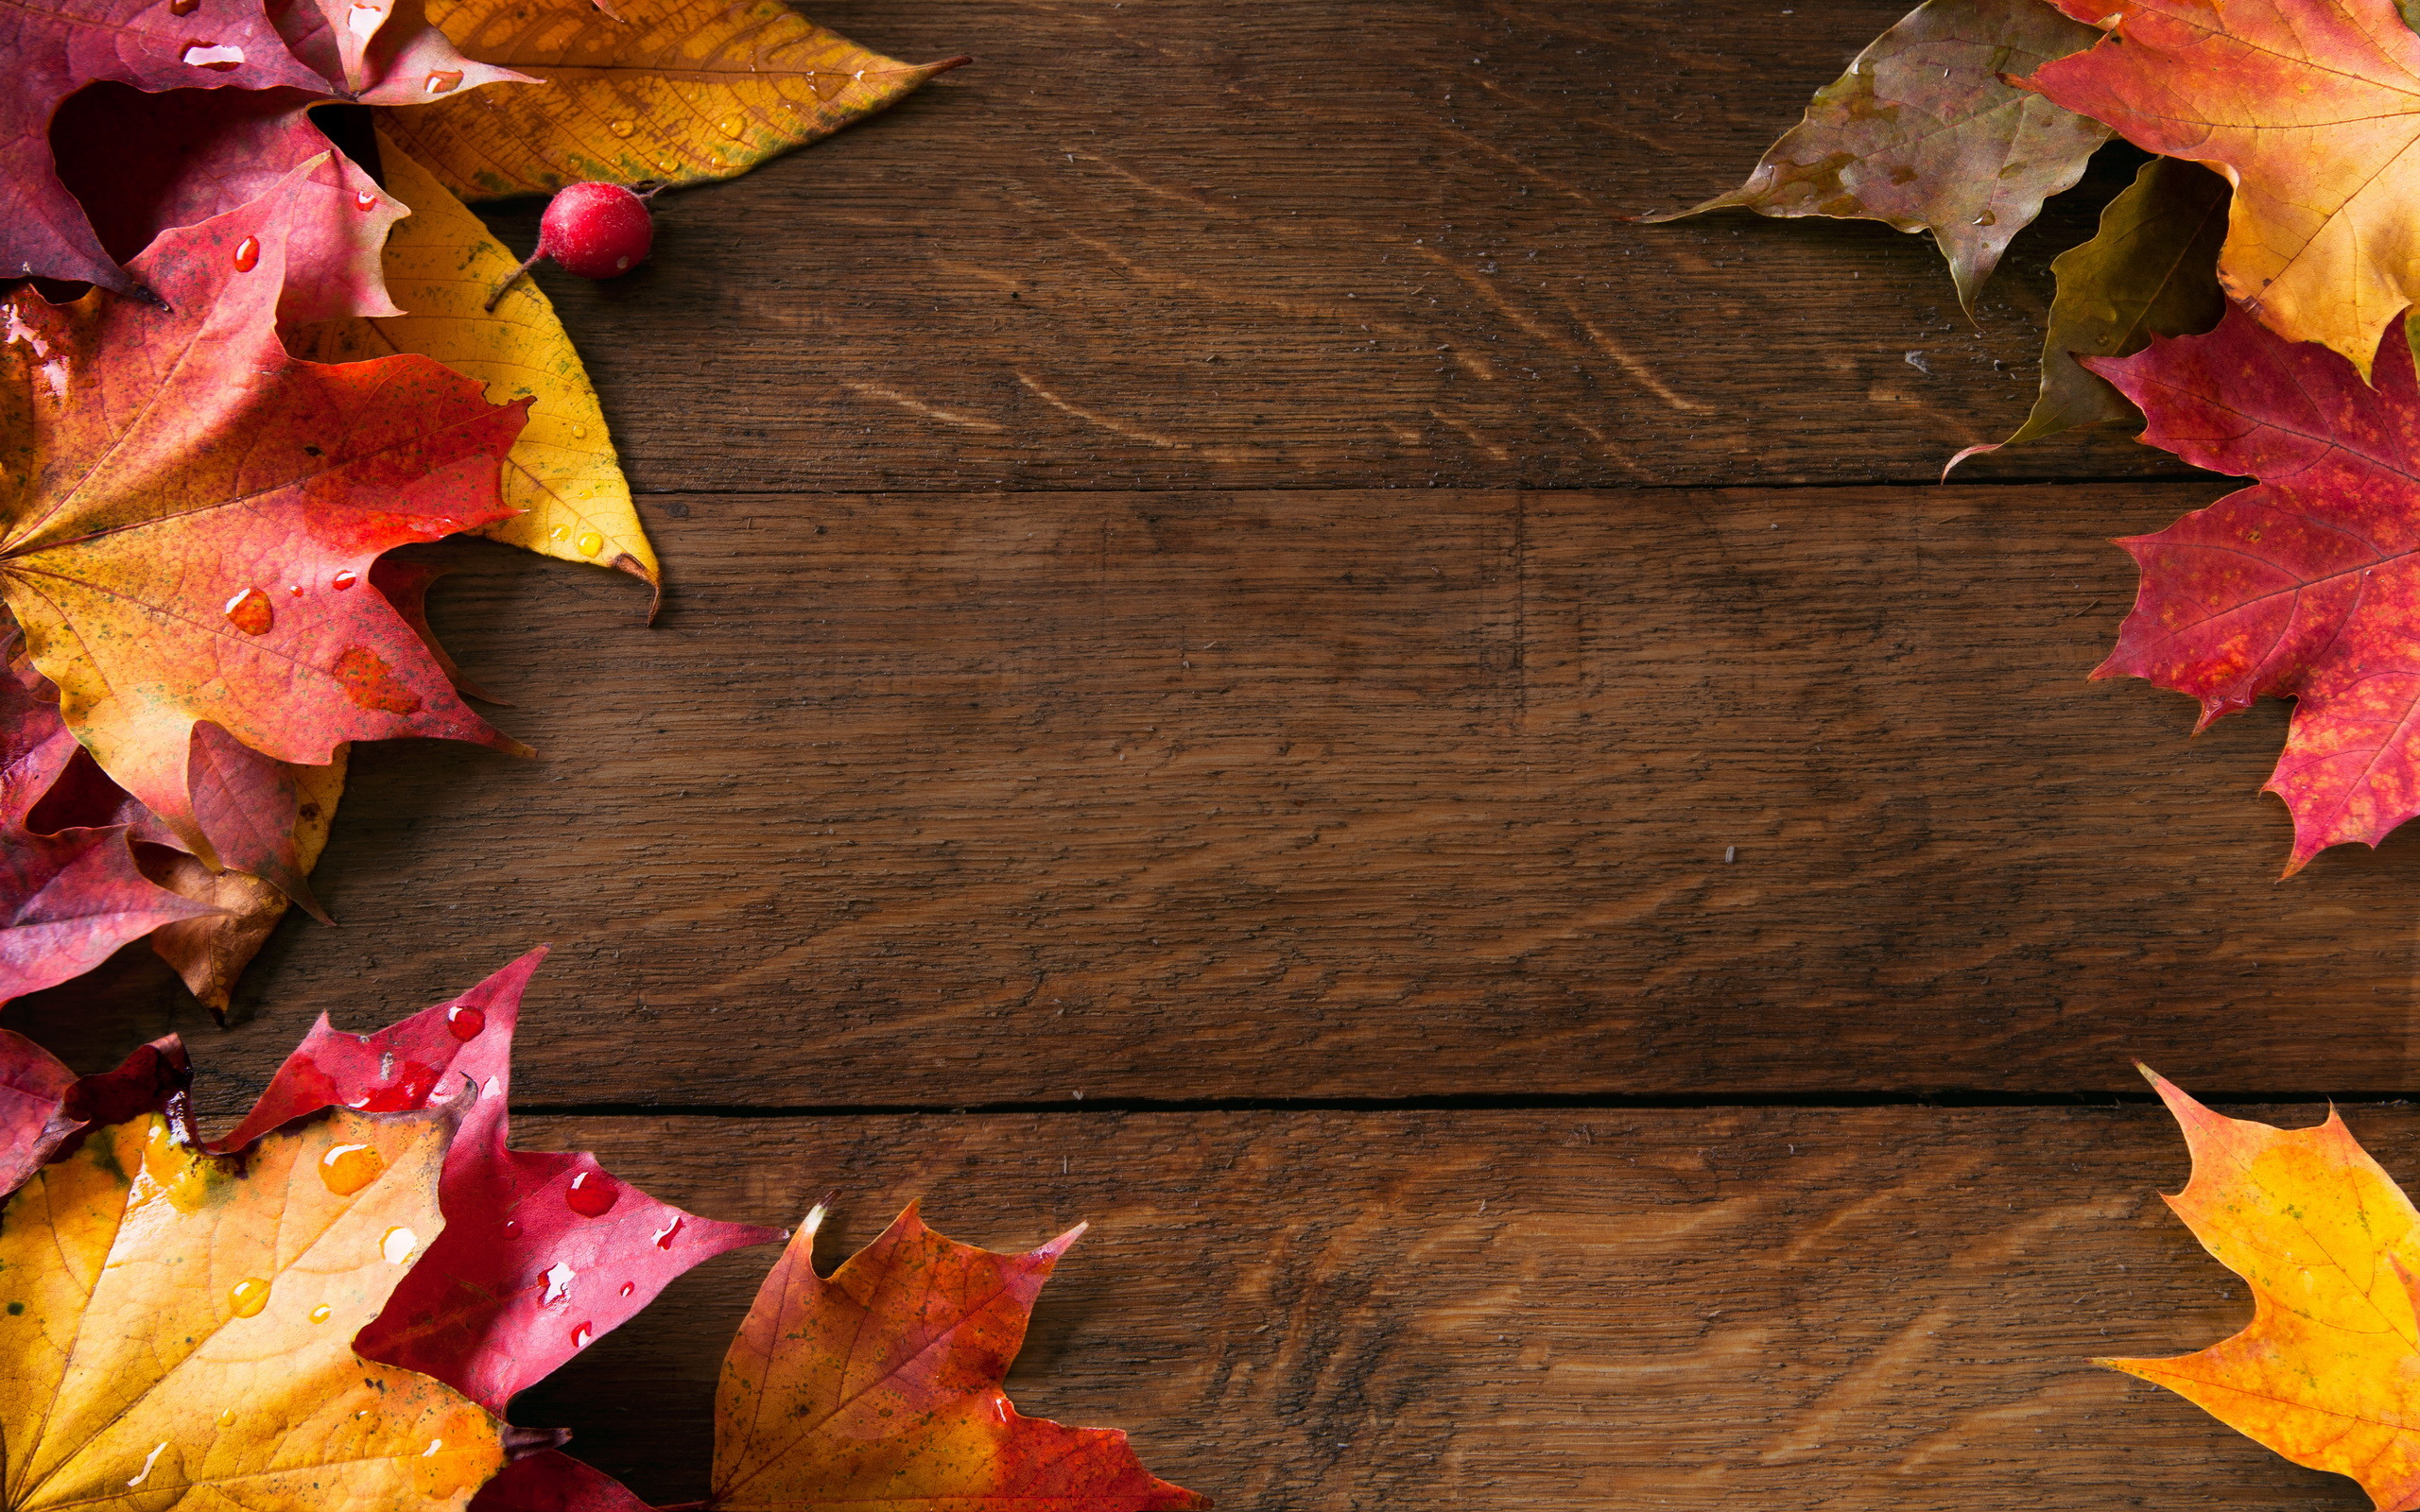 Fall Themed Iphone Wallpapers Fall Themed Wallpaper 183 ① Wallpapertag